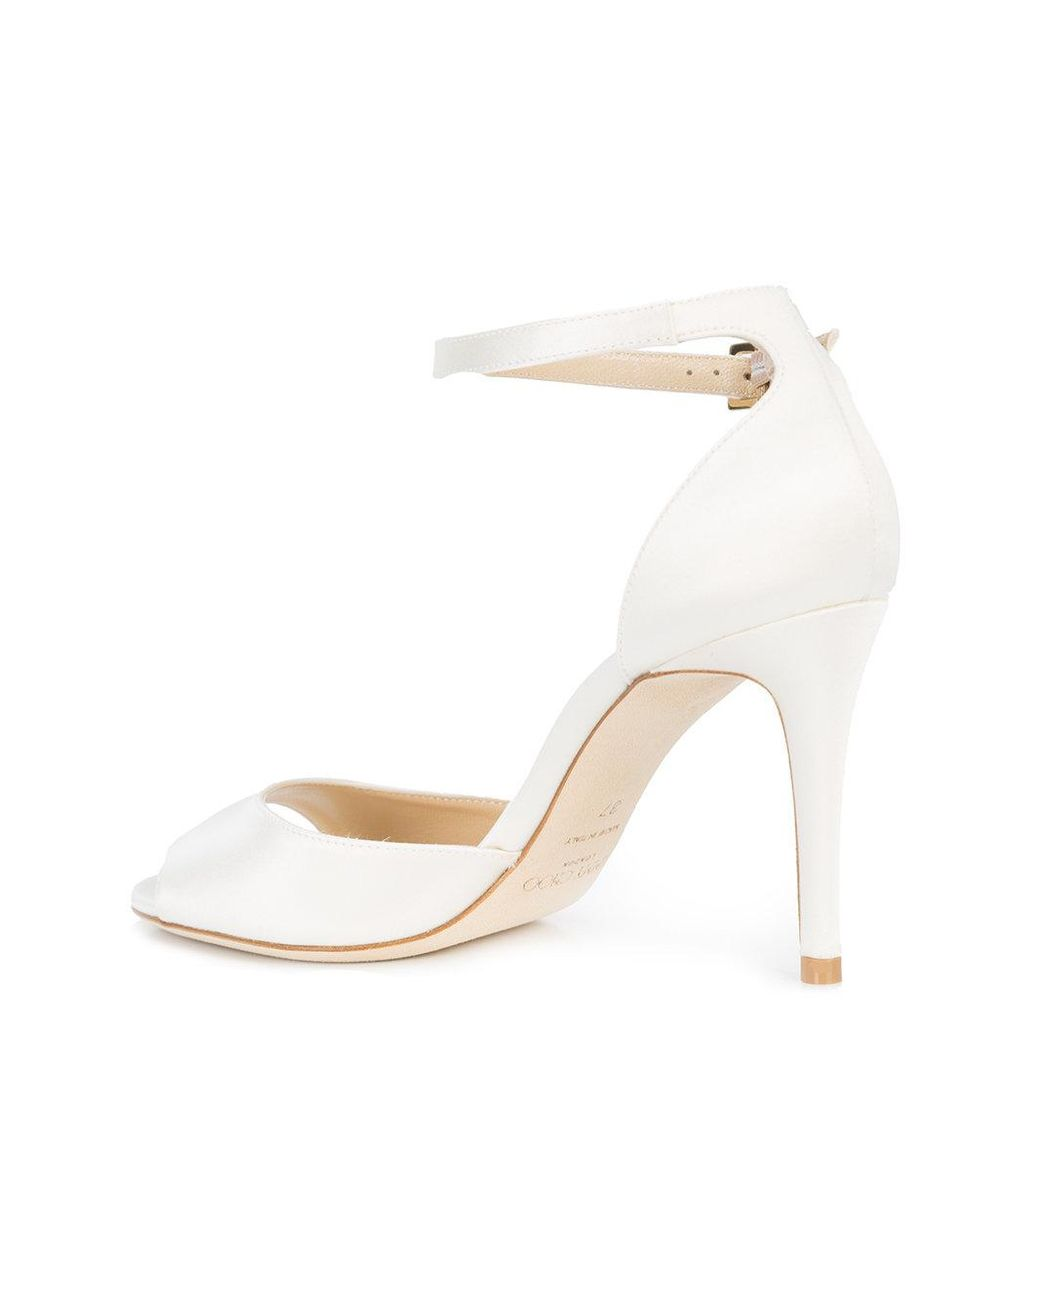 18e768028 Jimmy Choo Annie 85 Sandals in White - Lyst